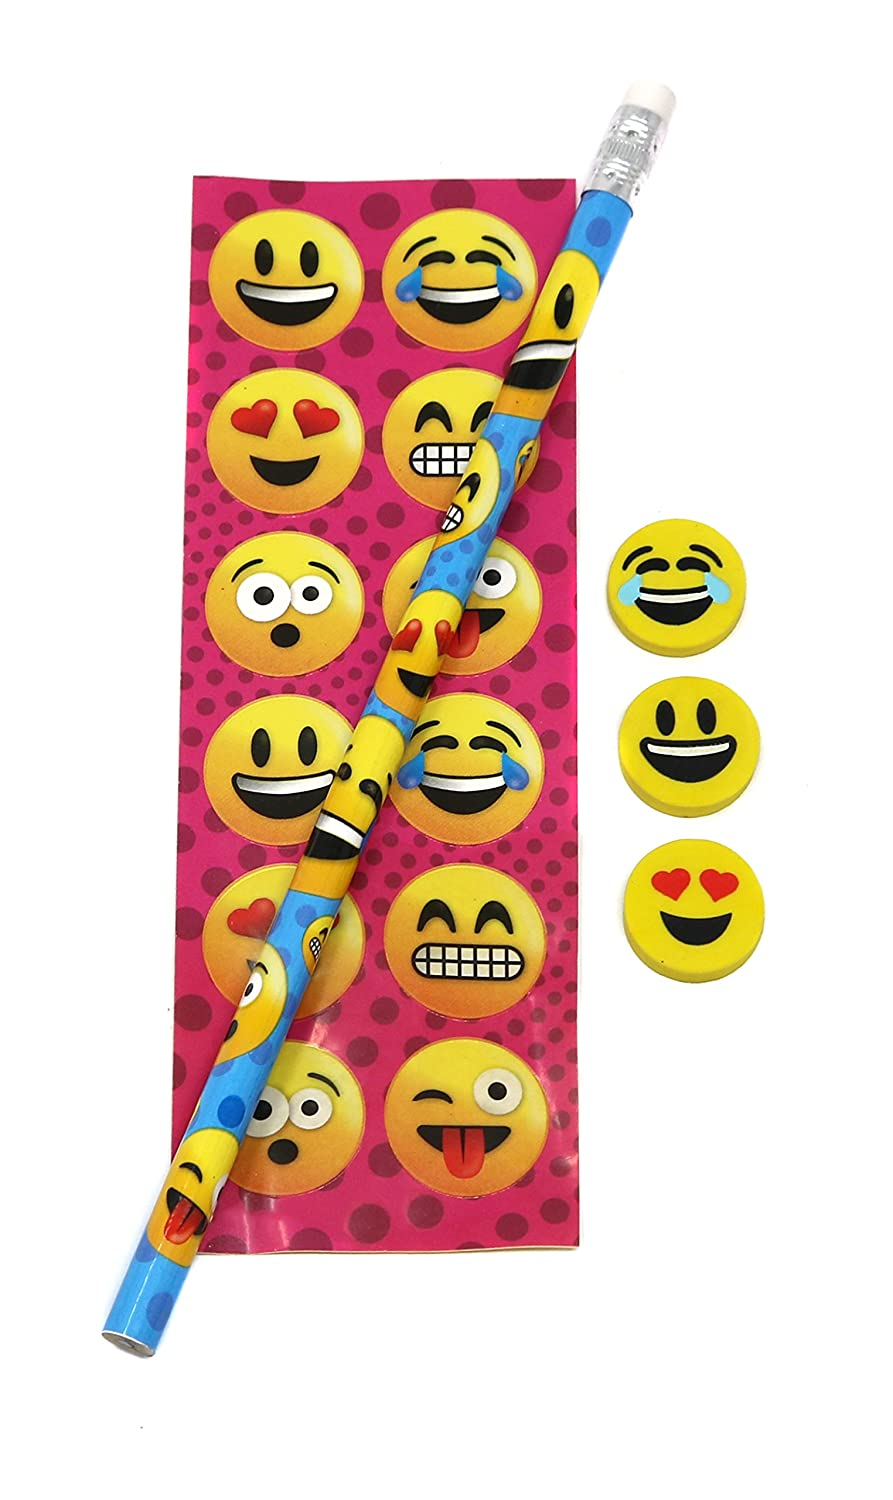 Pack Of 12 Sets Emoji Stationery Sets For Party Favors Includes Pencils SN Incorp. Stickers And Erasers